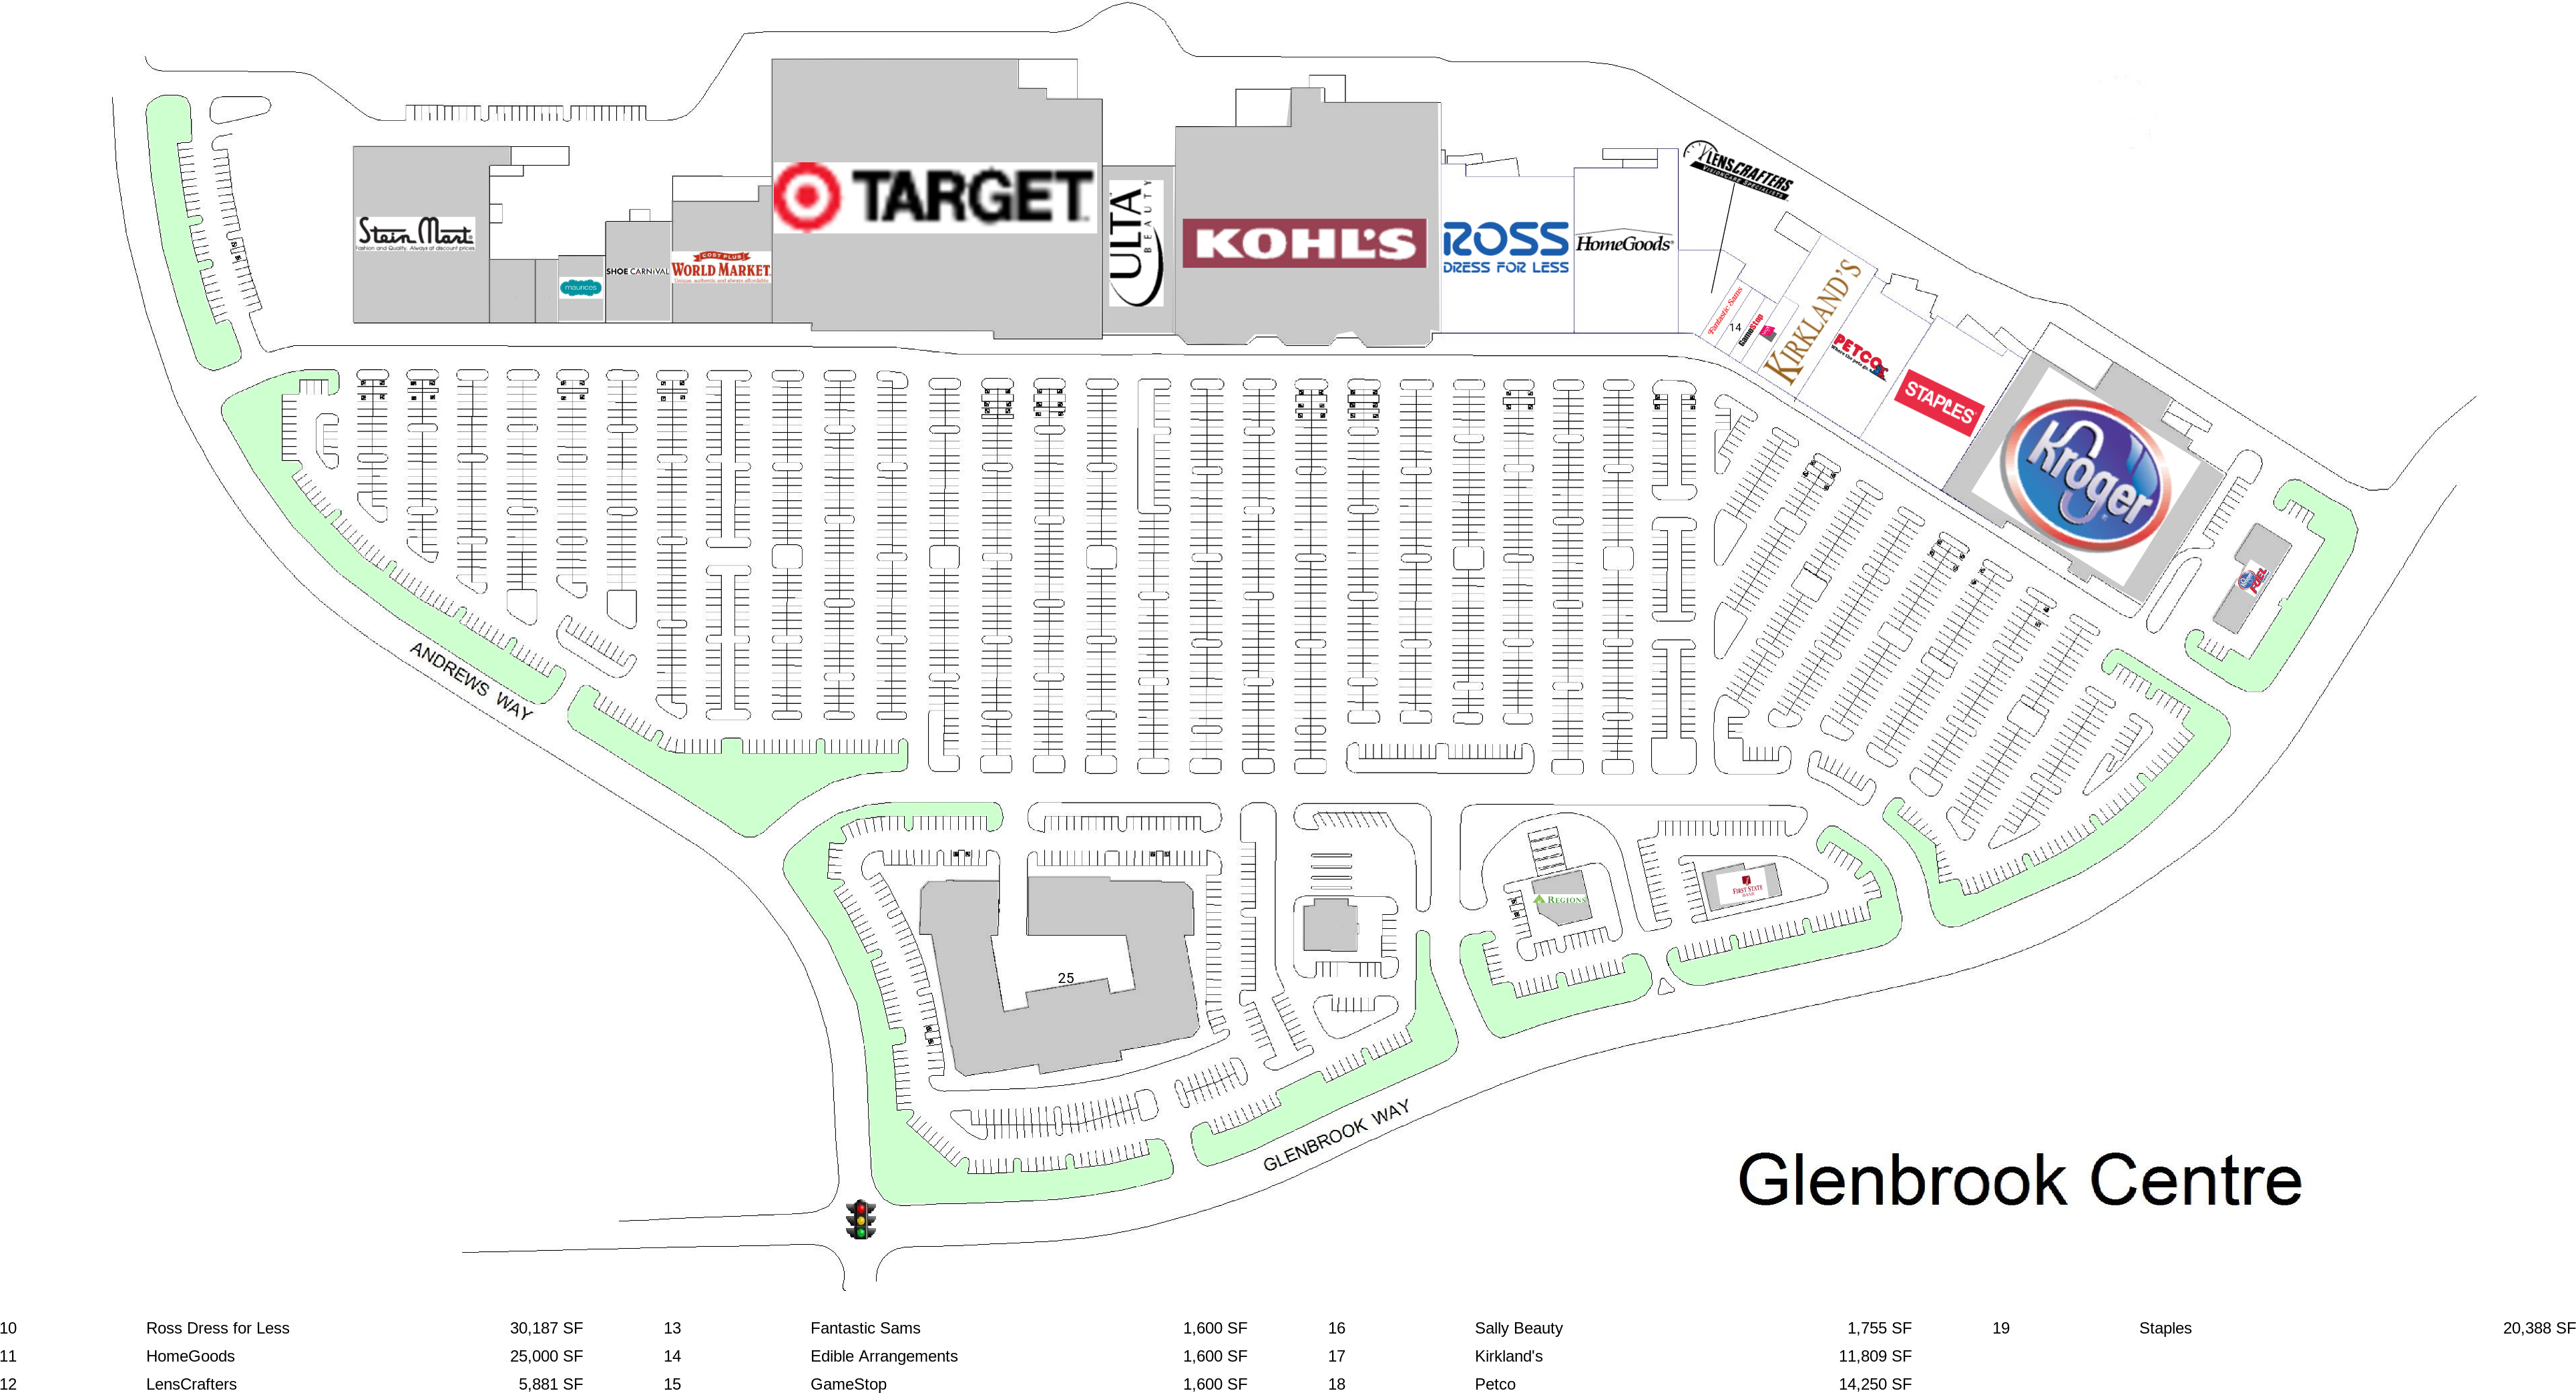 Hendersonville TN: Glenbrook Centre - Retail Space For Lease ... on bloomfield mall map, monroe mall map, mall of louisiana map, eagle ridge mall map, orange mall map, outside mall of america map, jefferson mall map, saginaw fashion square mall map, town center mall map, az fashion square mall map, allen county fairgrounds map, fairfield mall map, waterford mall map, georgetown mall map, ellington mall map, north point mall map, walden mall map, austin mall map, the florida mall map, queens center mall map,